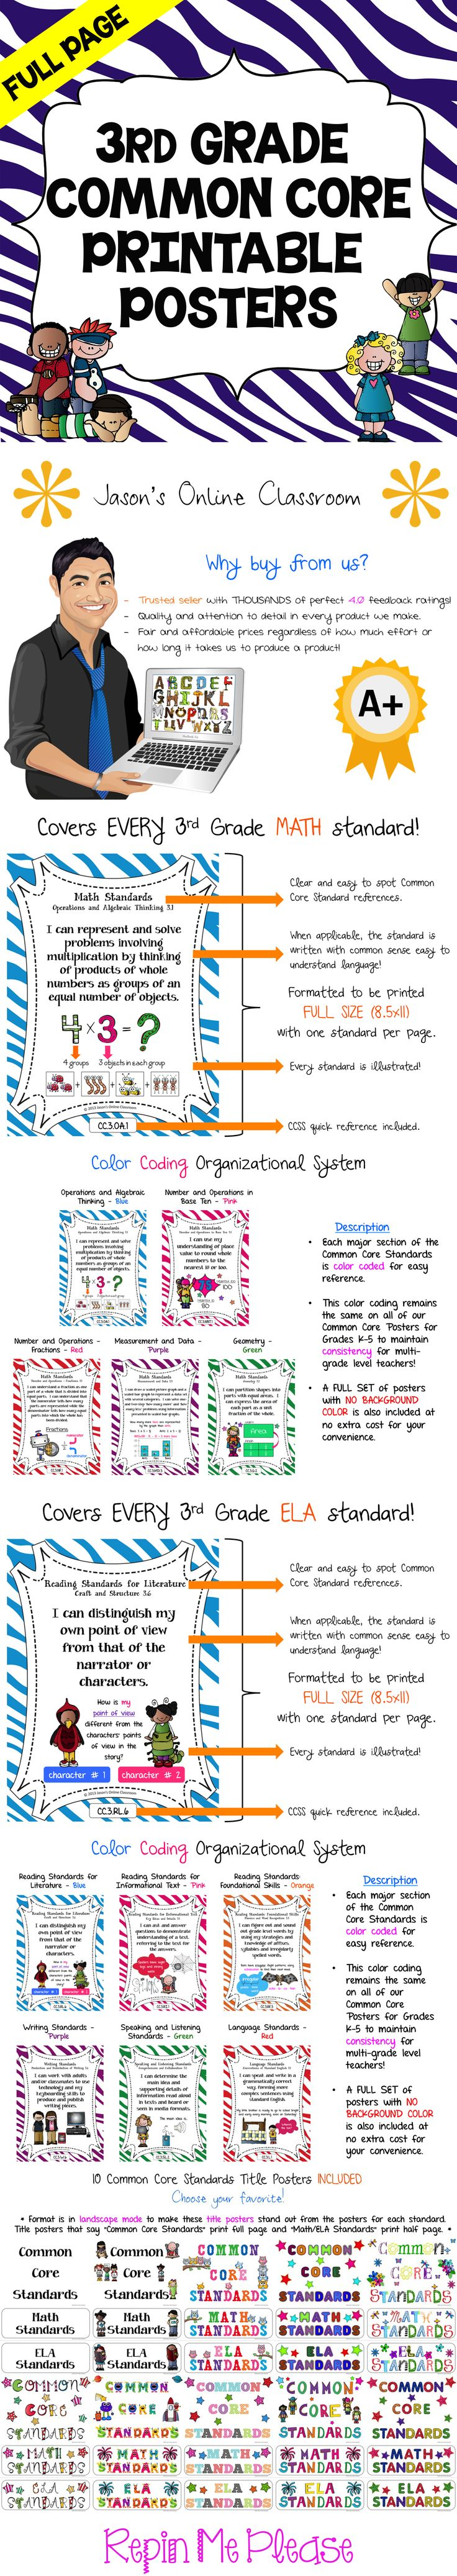 3rd GRADE COMMON CORE POSTERS - Save a ton of time by buying our FULL PAGE SIZE pre-made Common Core color coded posters with detailed visual examples. We also offer half-sized posters which can be found at our TpT store. $$